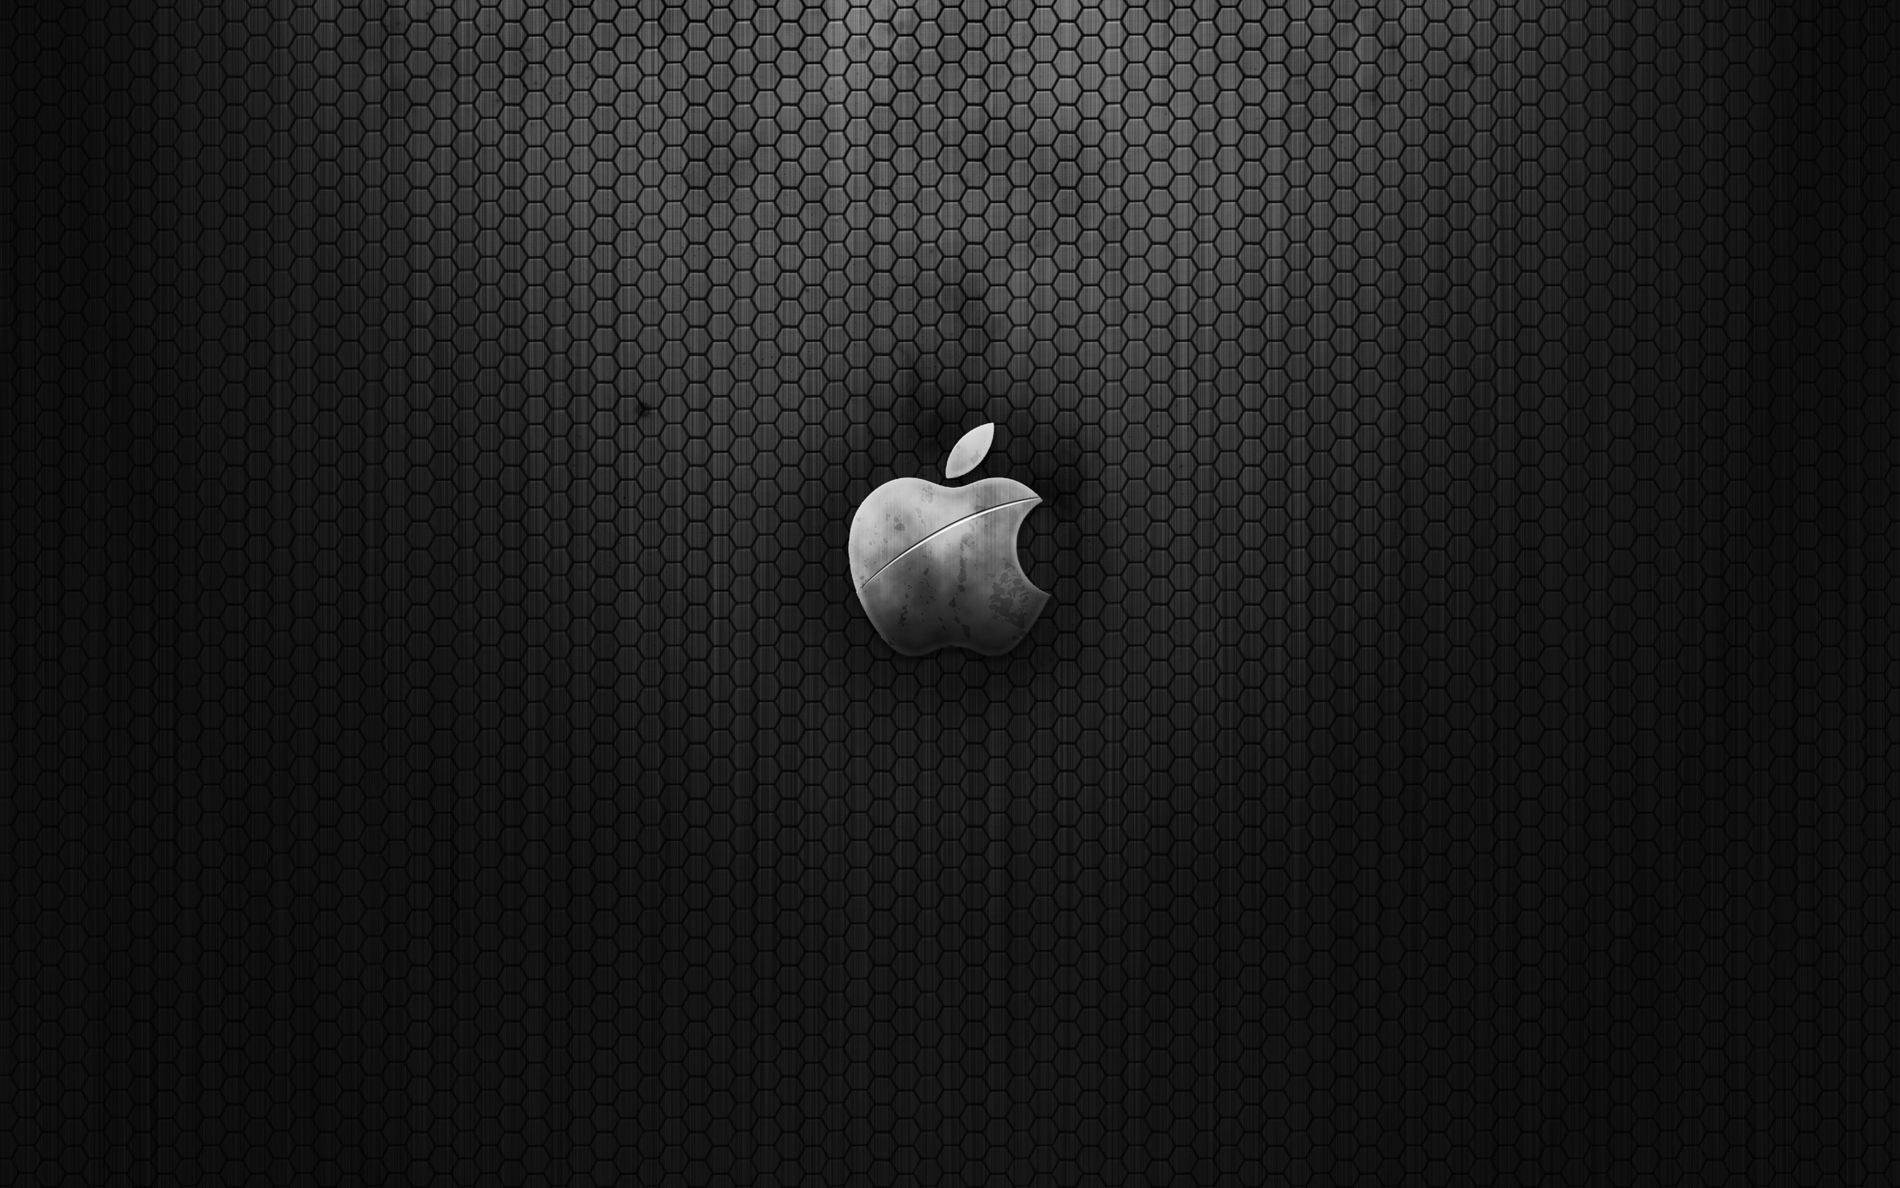 10 Black Wallpapers Free Jpg Png Psd Format Download Design Trends Premium Psd Vector Downloads